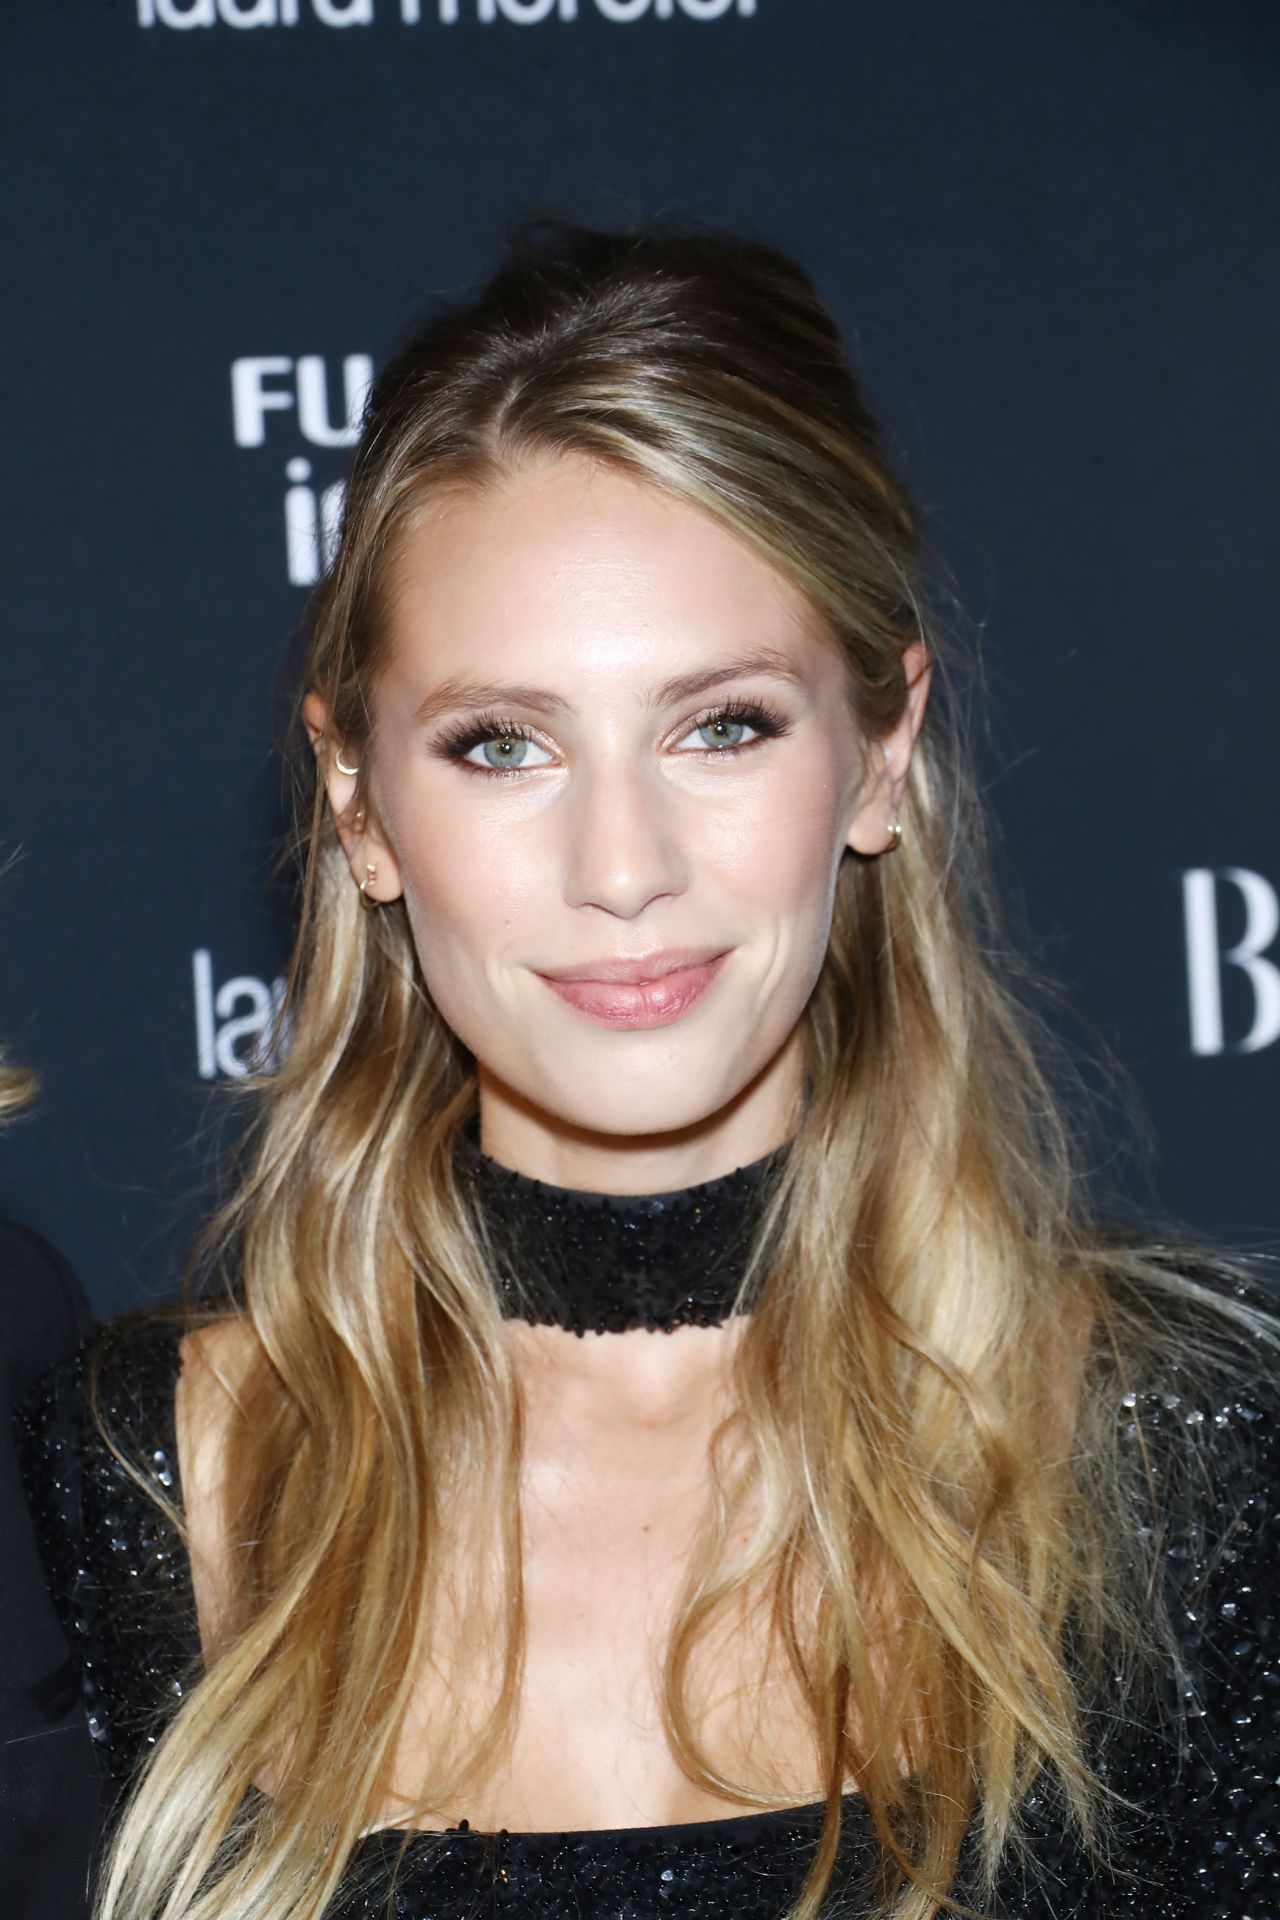 Dylan Penn nudes (95 photos), hot Selfie, Instagram, swimsuit 2019